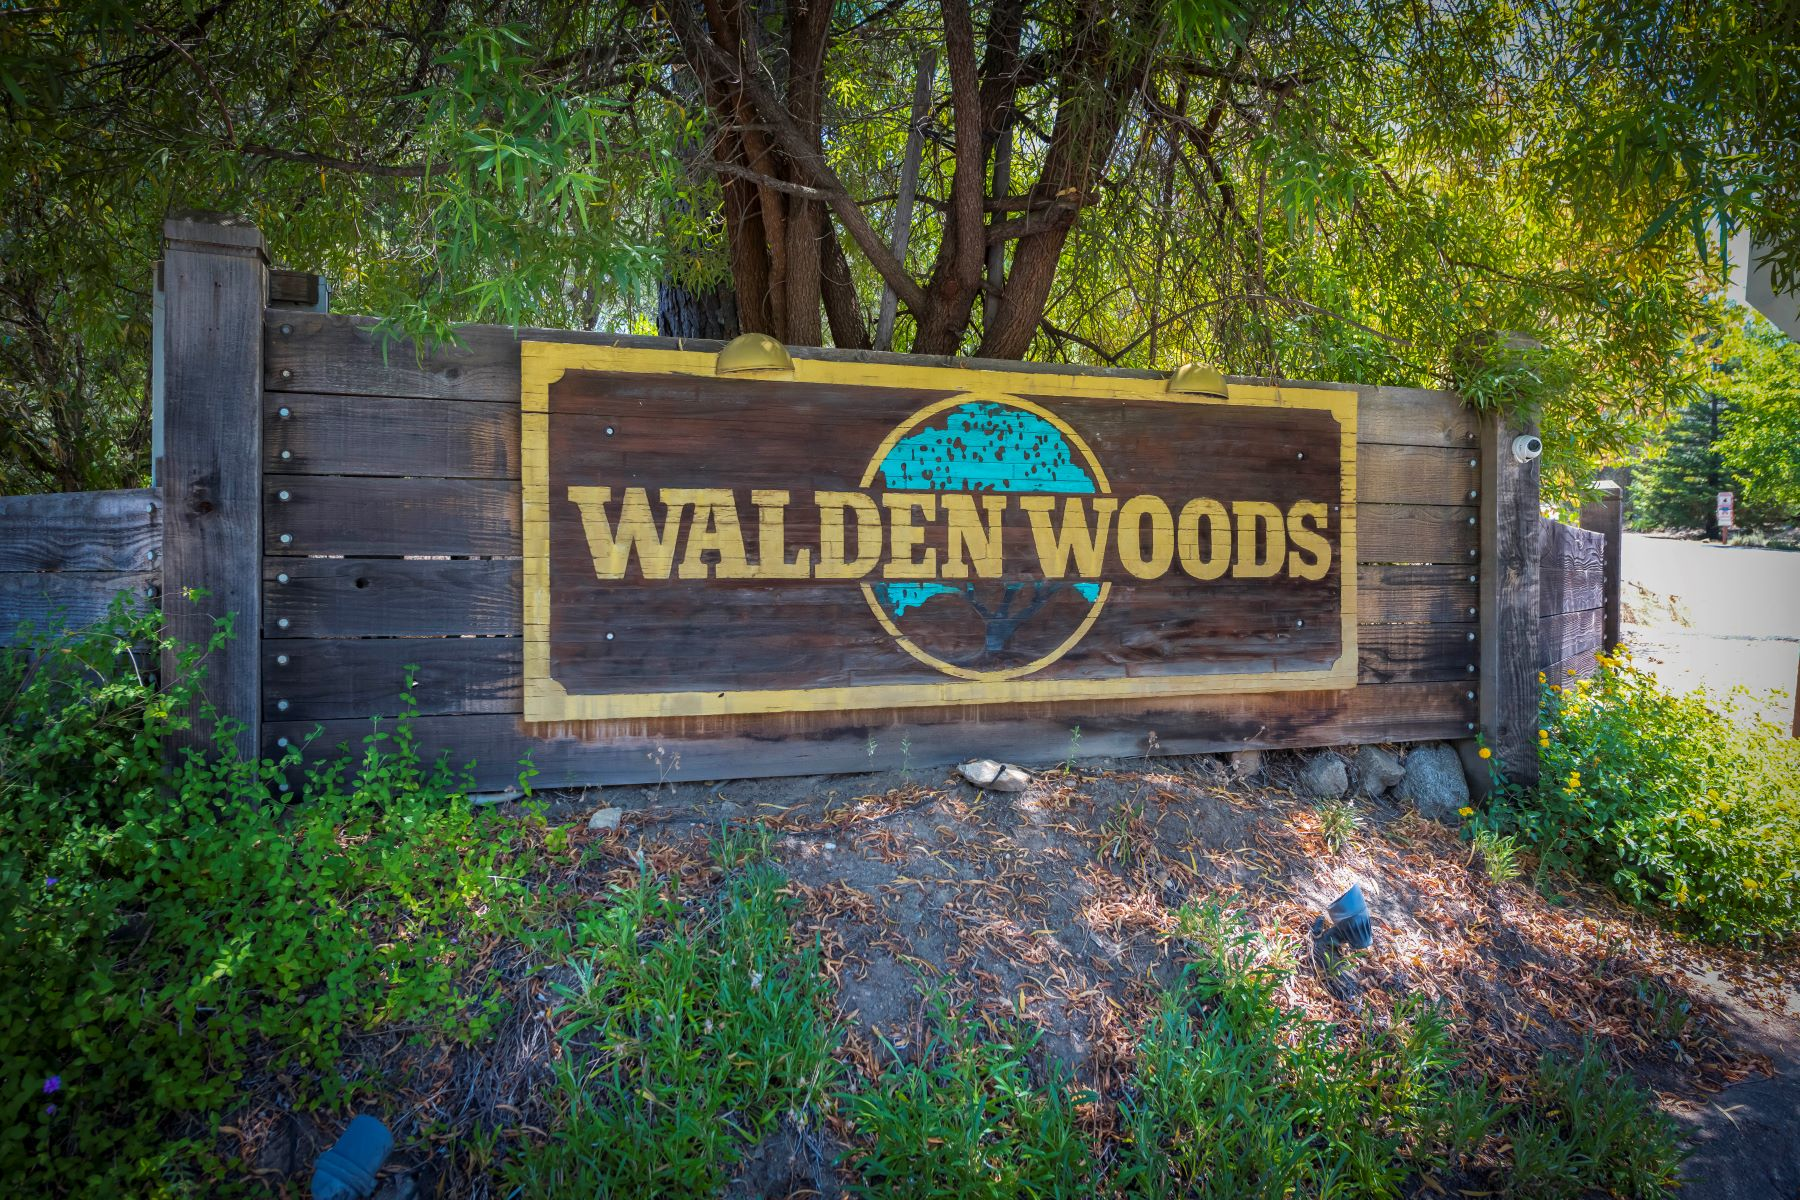 Single Family Homes for Sale at 8210 Walden Woods Way, Granite Bay, CA 95746 8210 Walden Woods Way Granite Bay, California 95746 United States